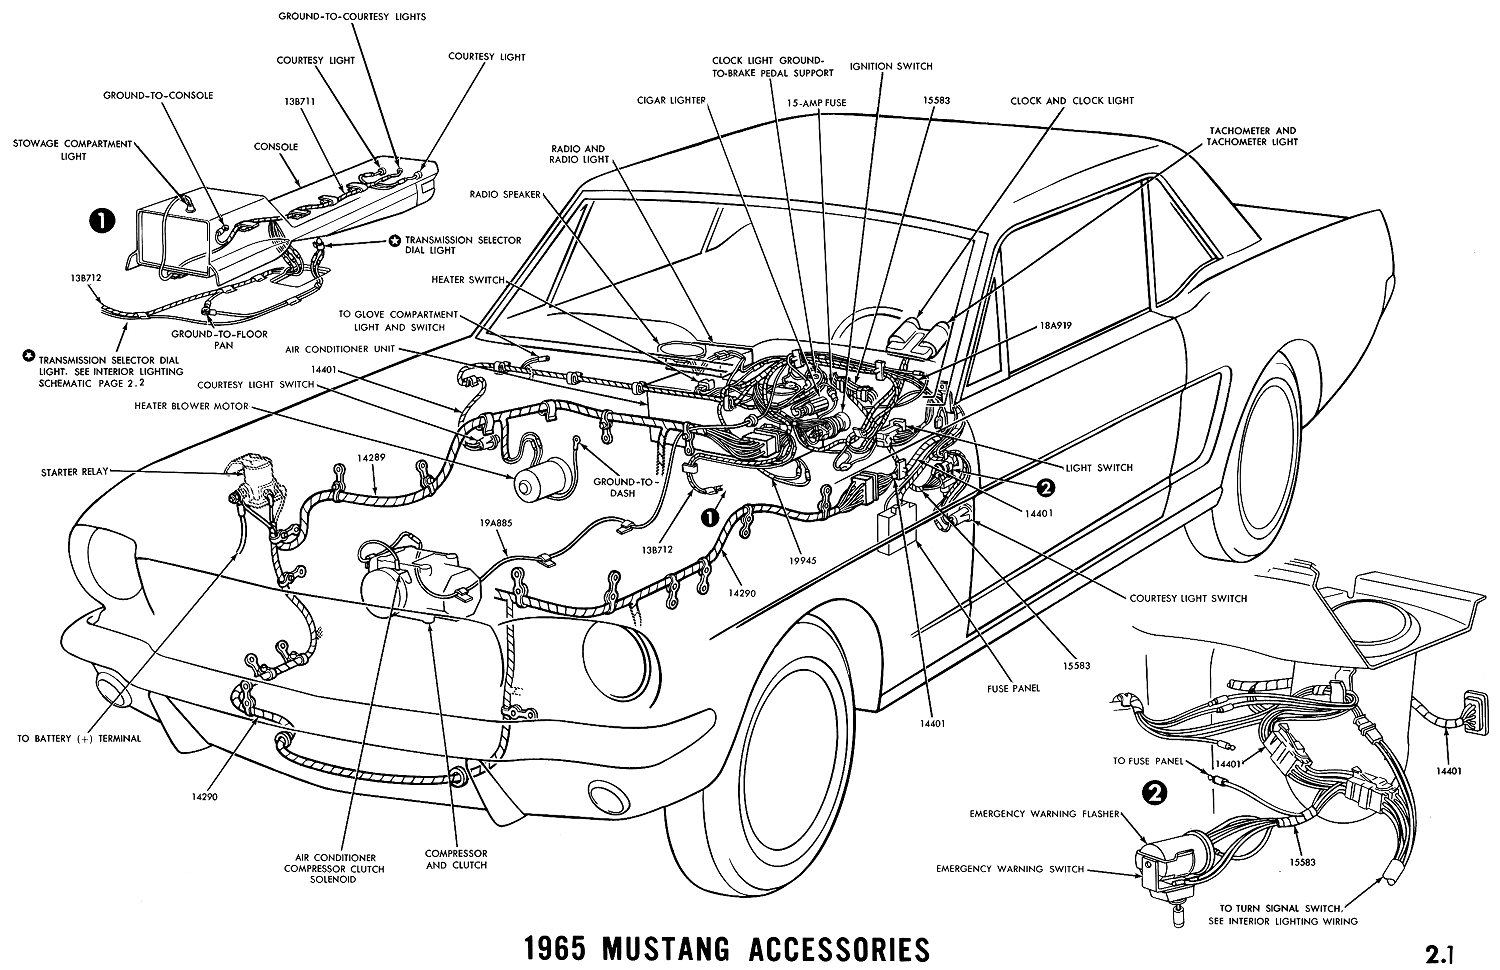 1965 Mustang Radio Wiring Harness Diagram Will Be A Thing Audio Images Gallery